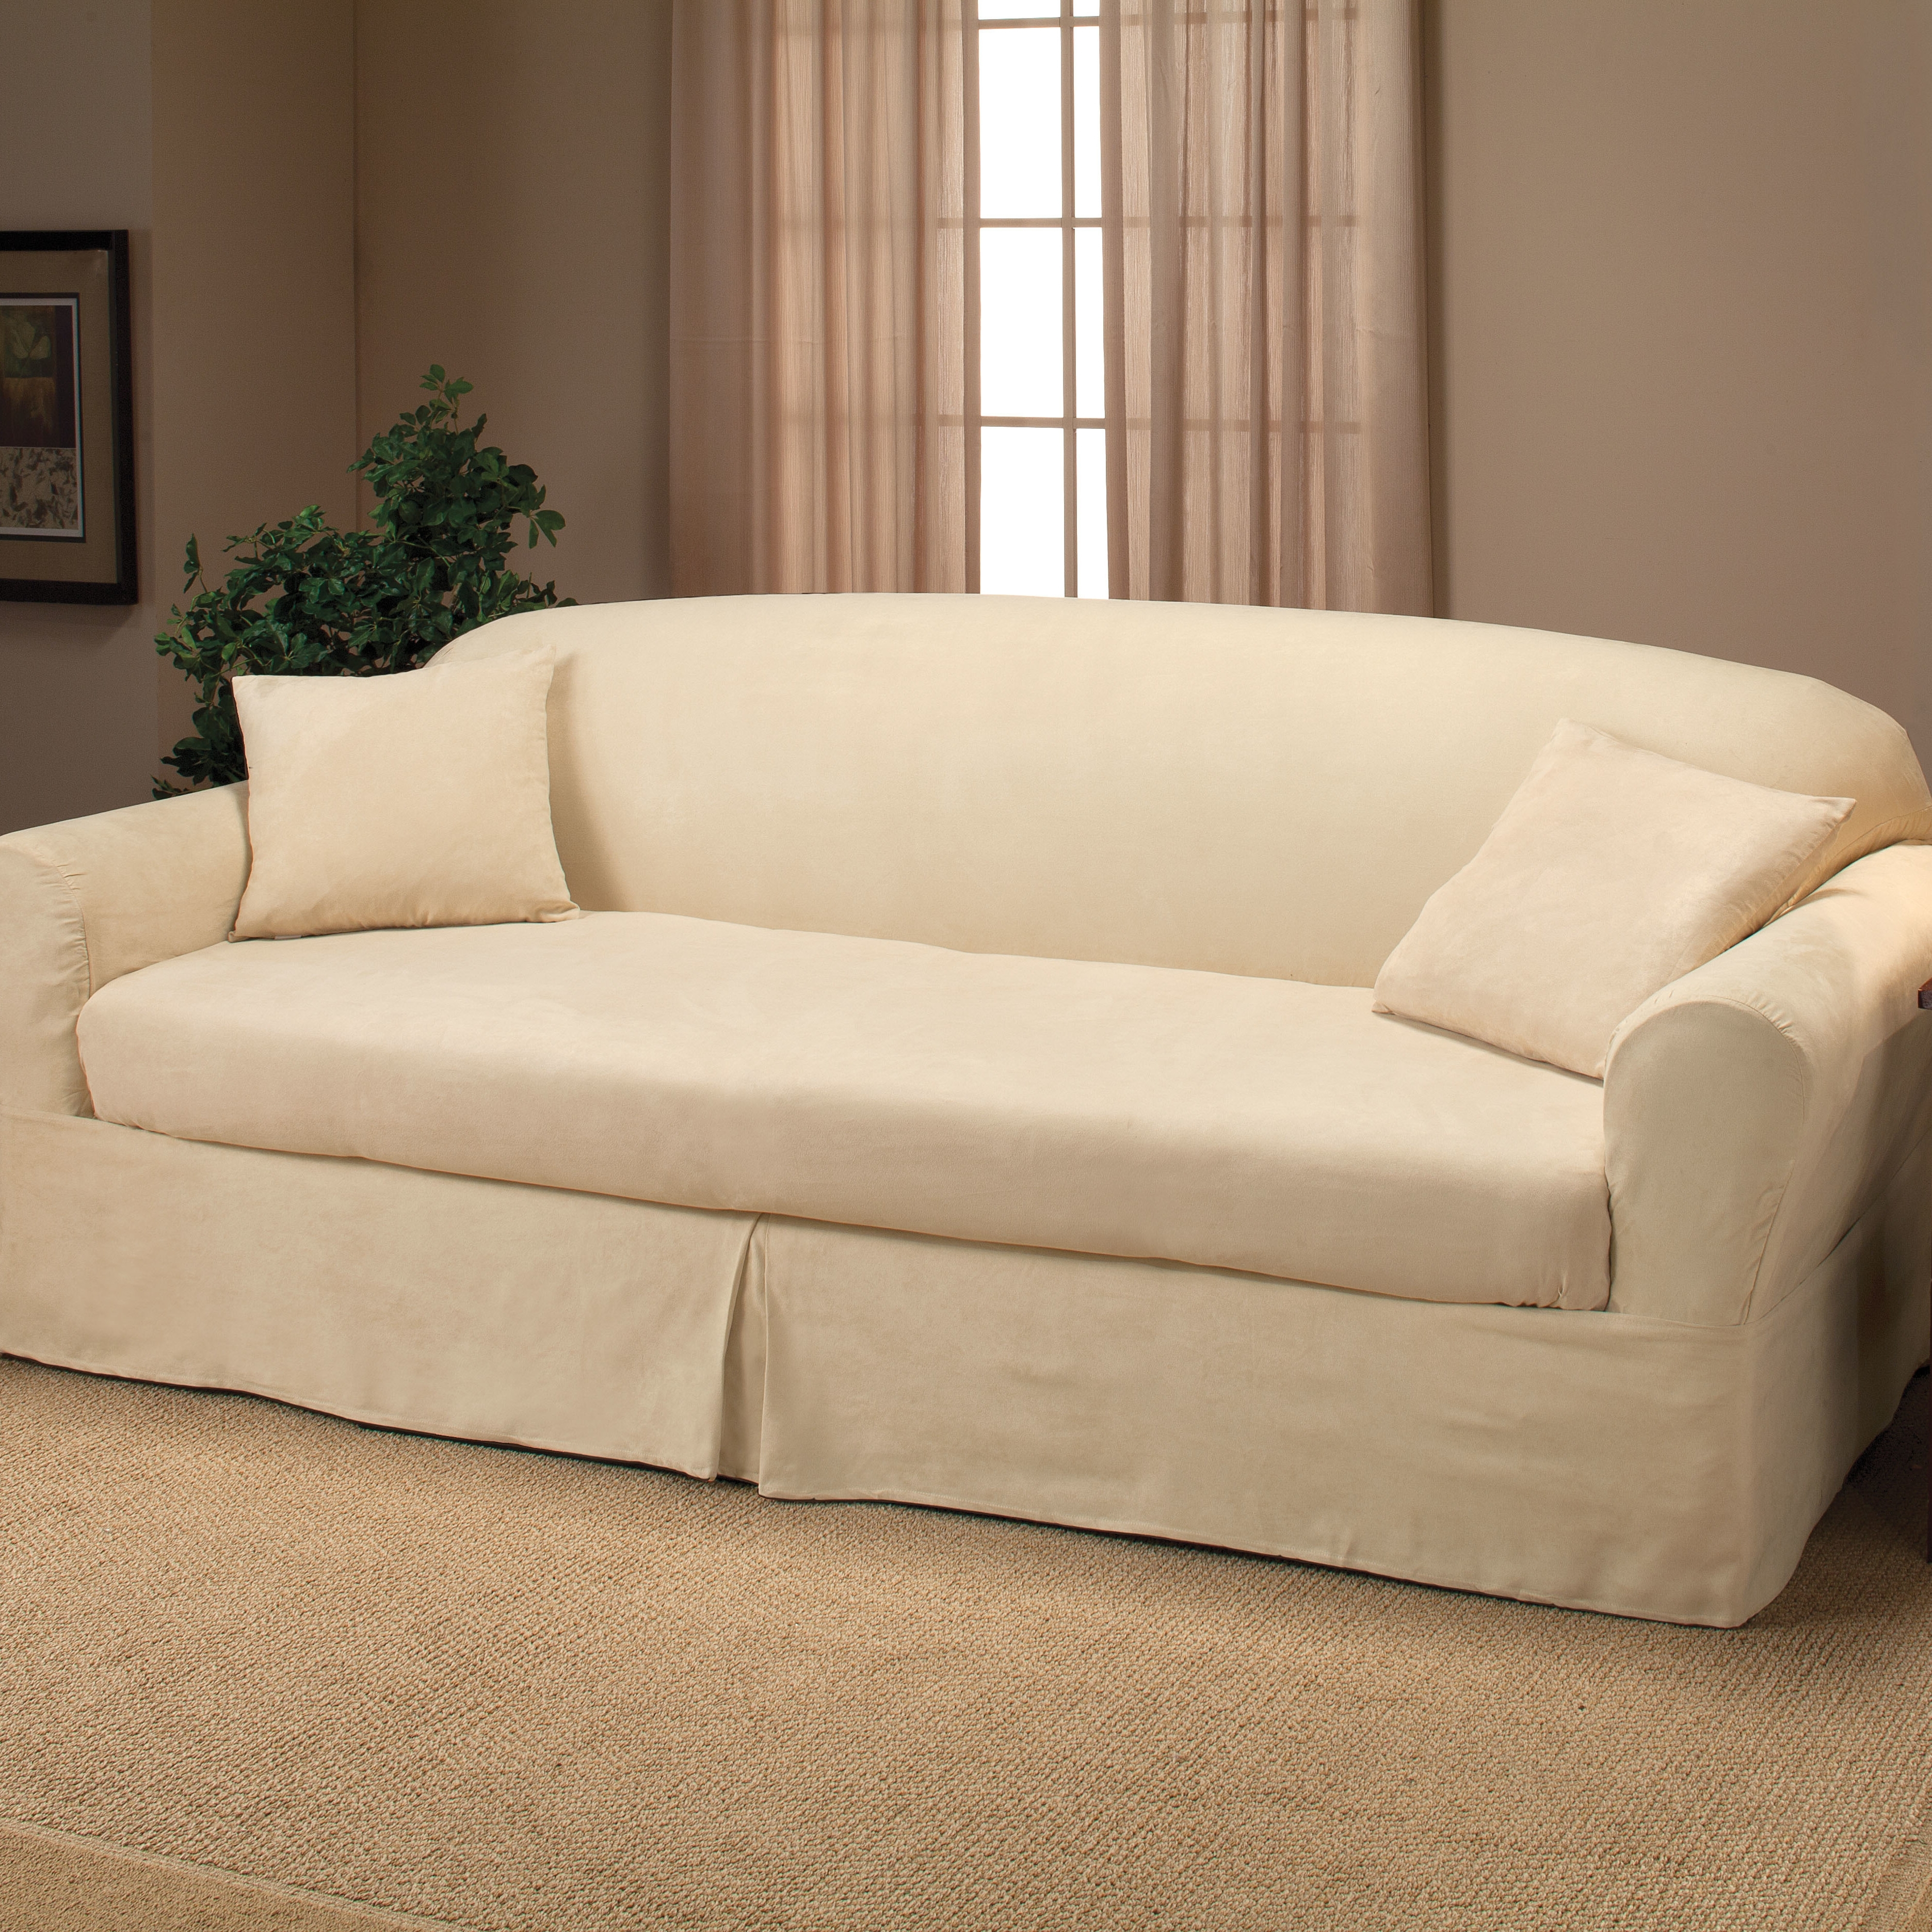 2 Piece Sectional Sofa Slipcovers - Cleanupflorida inside Glamour Ii 3 Piece Sectionals